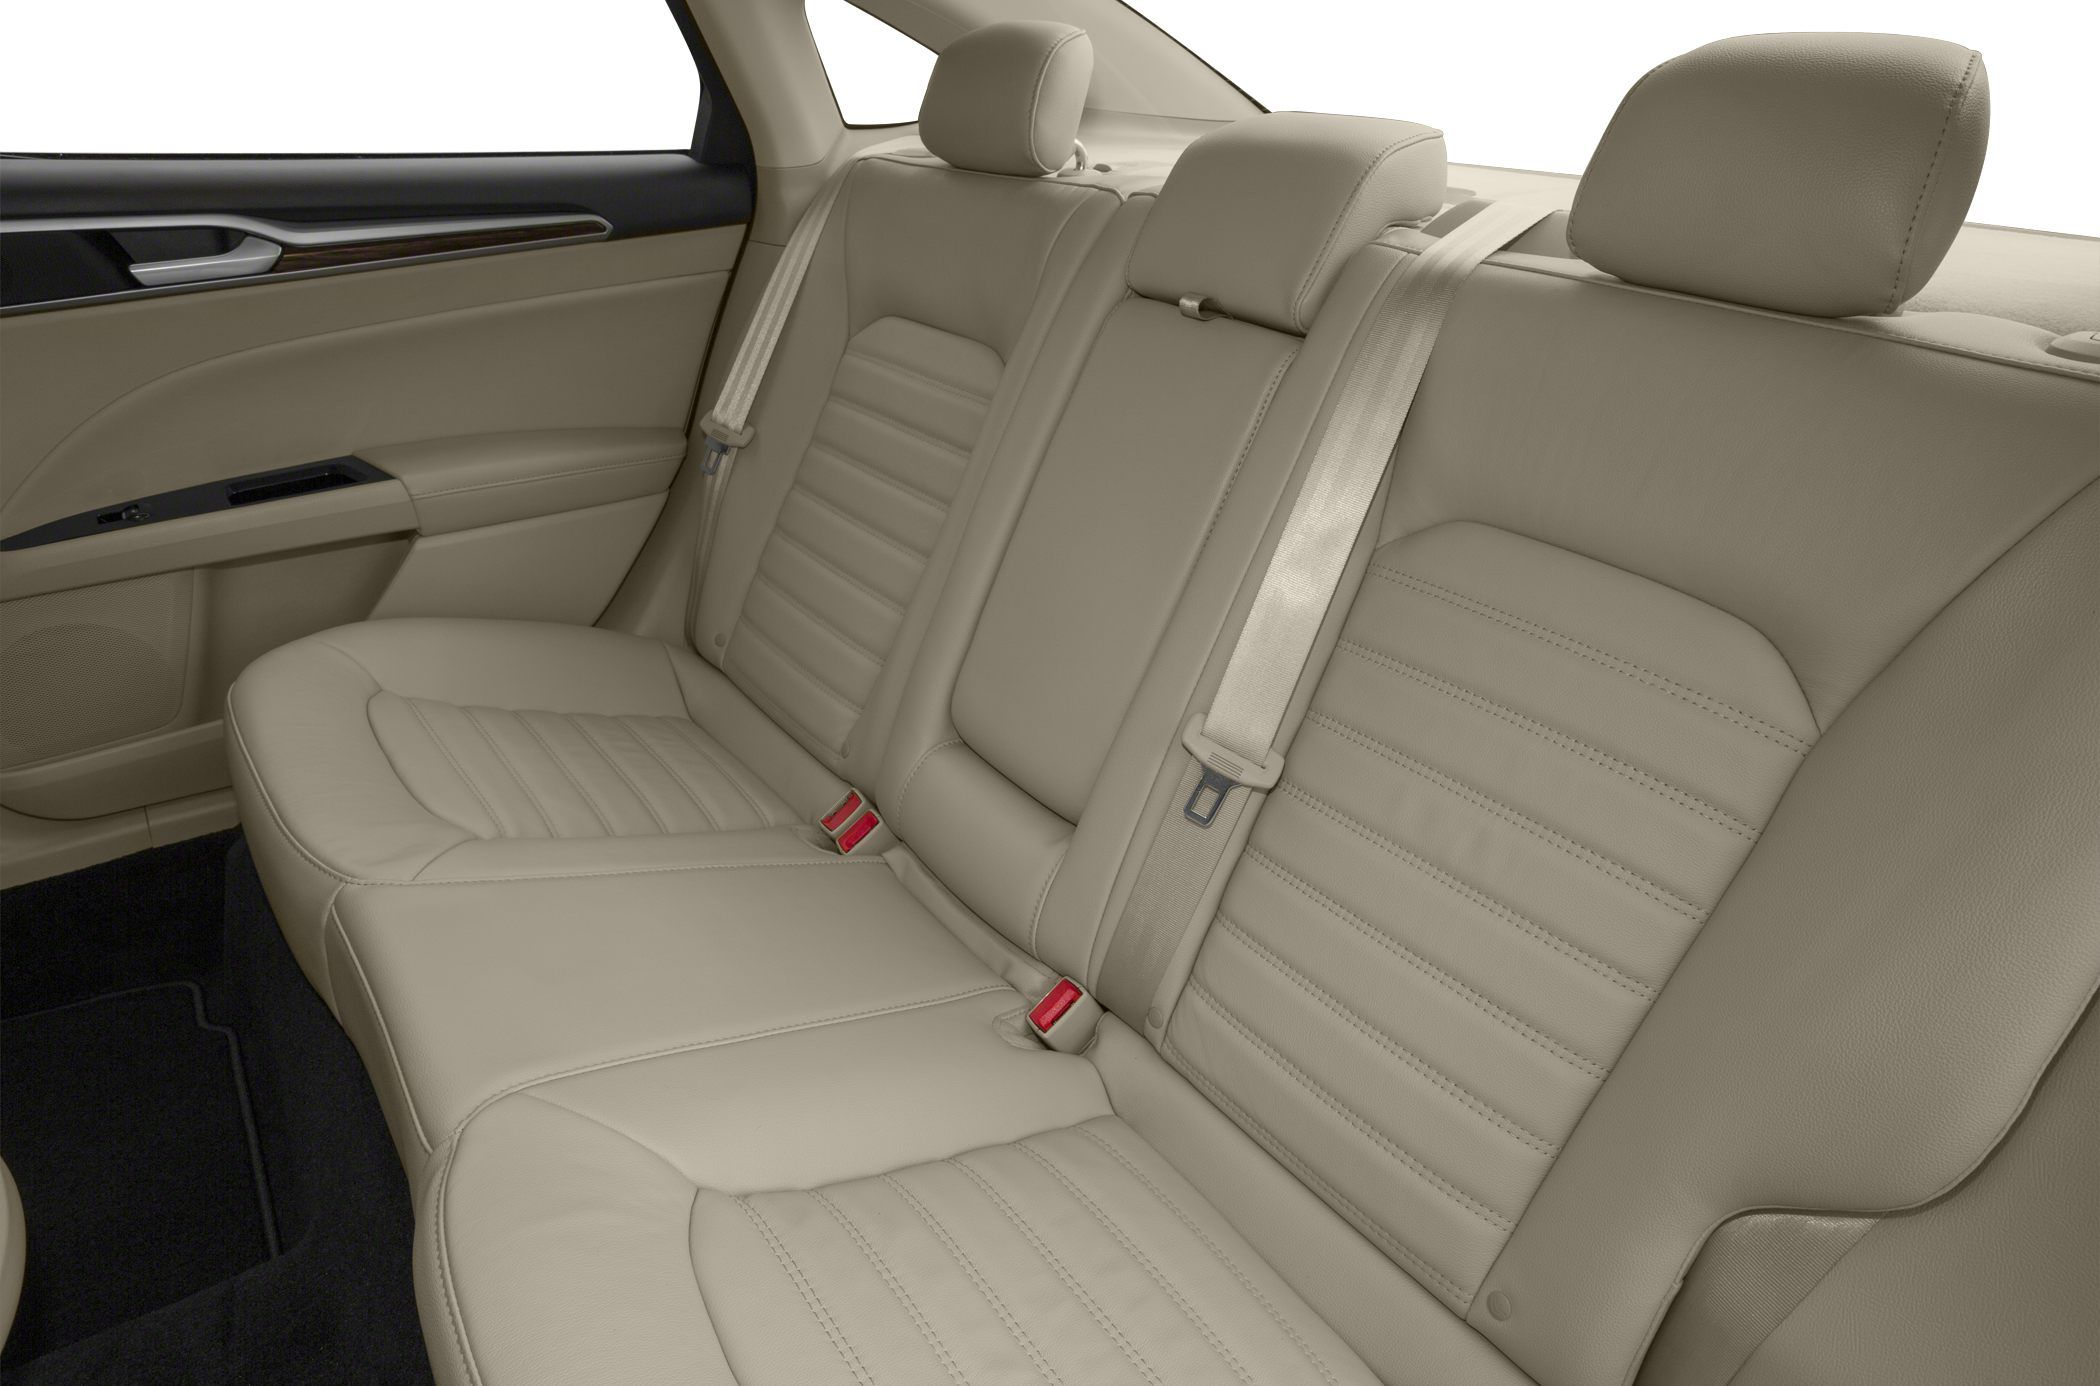 2017 Ford Fusion Hybrid S Rear Seat